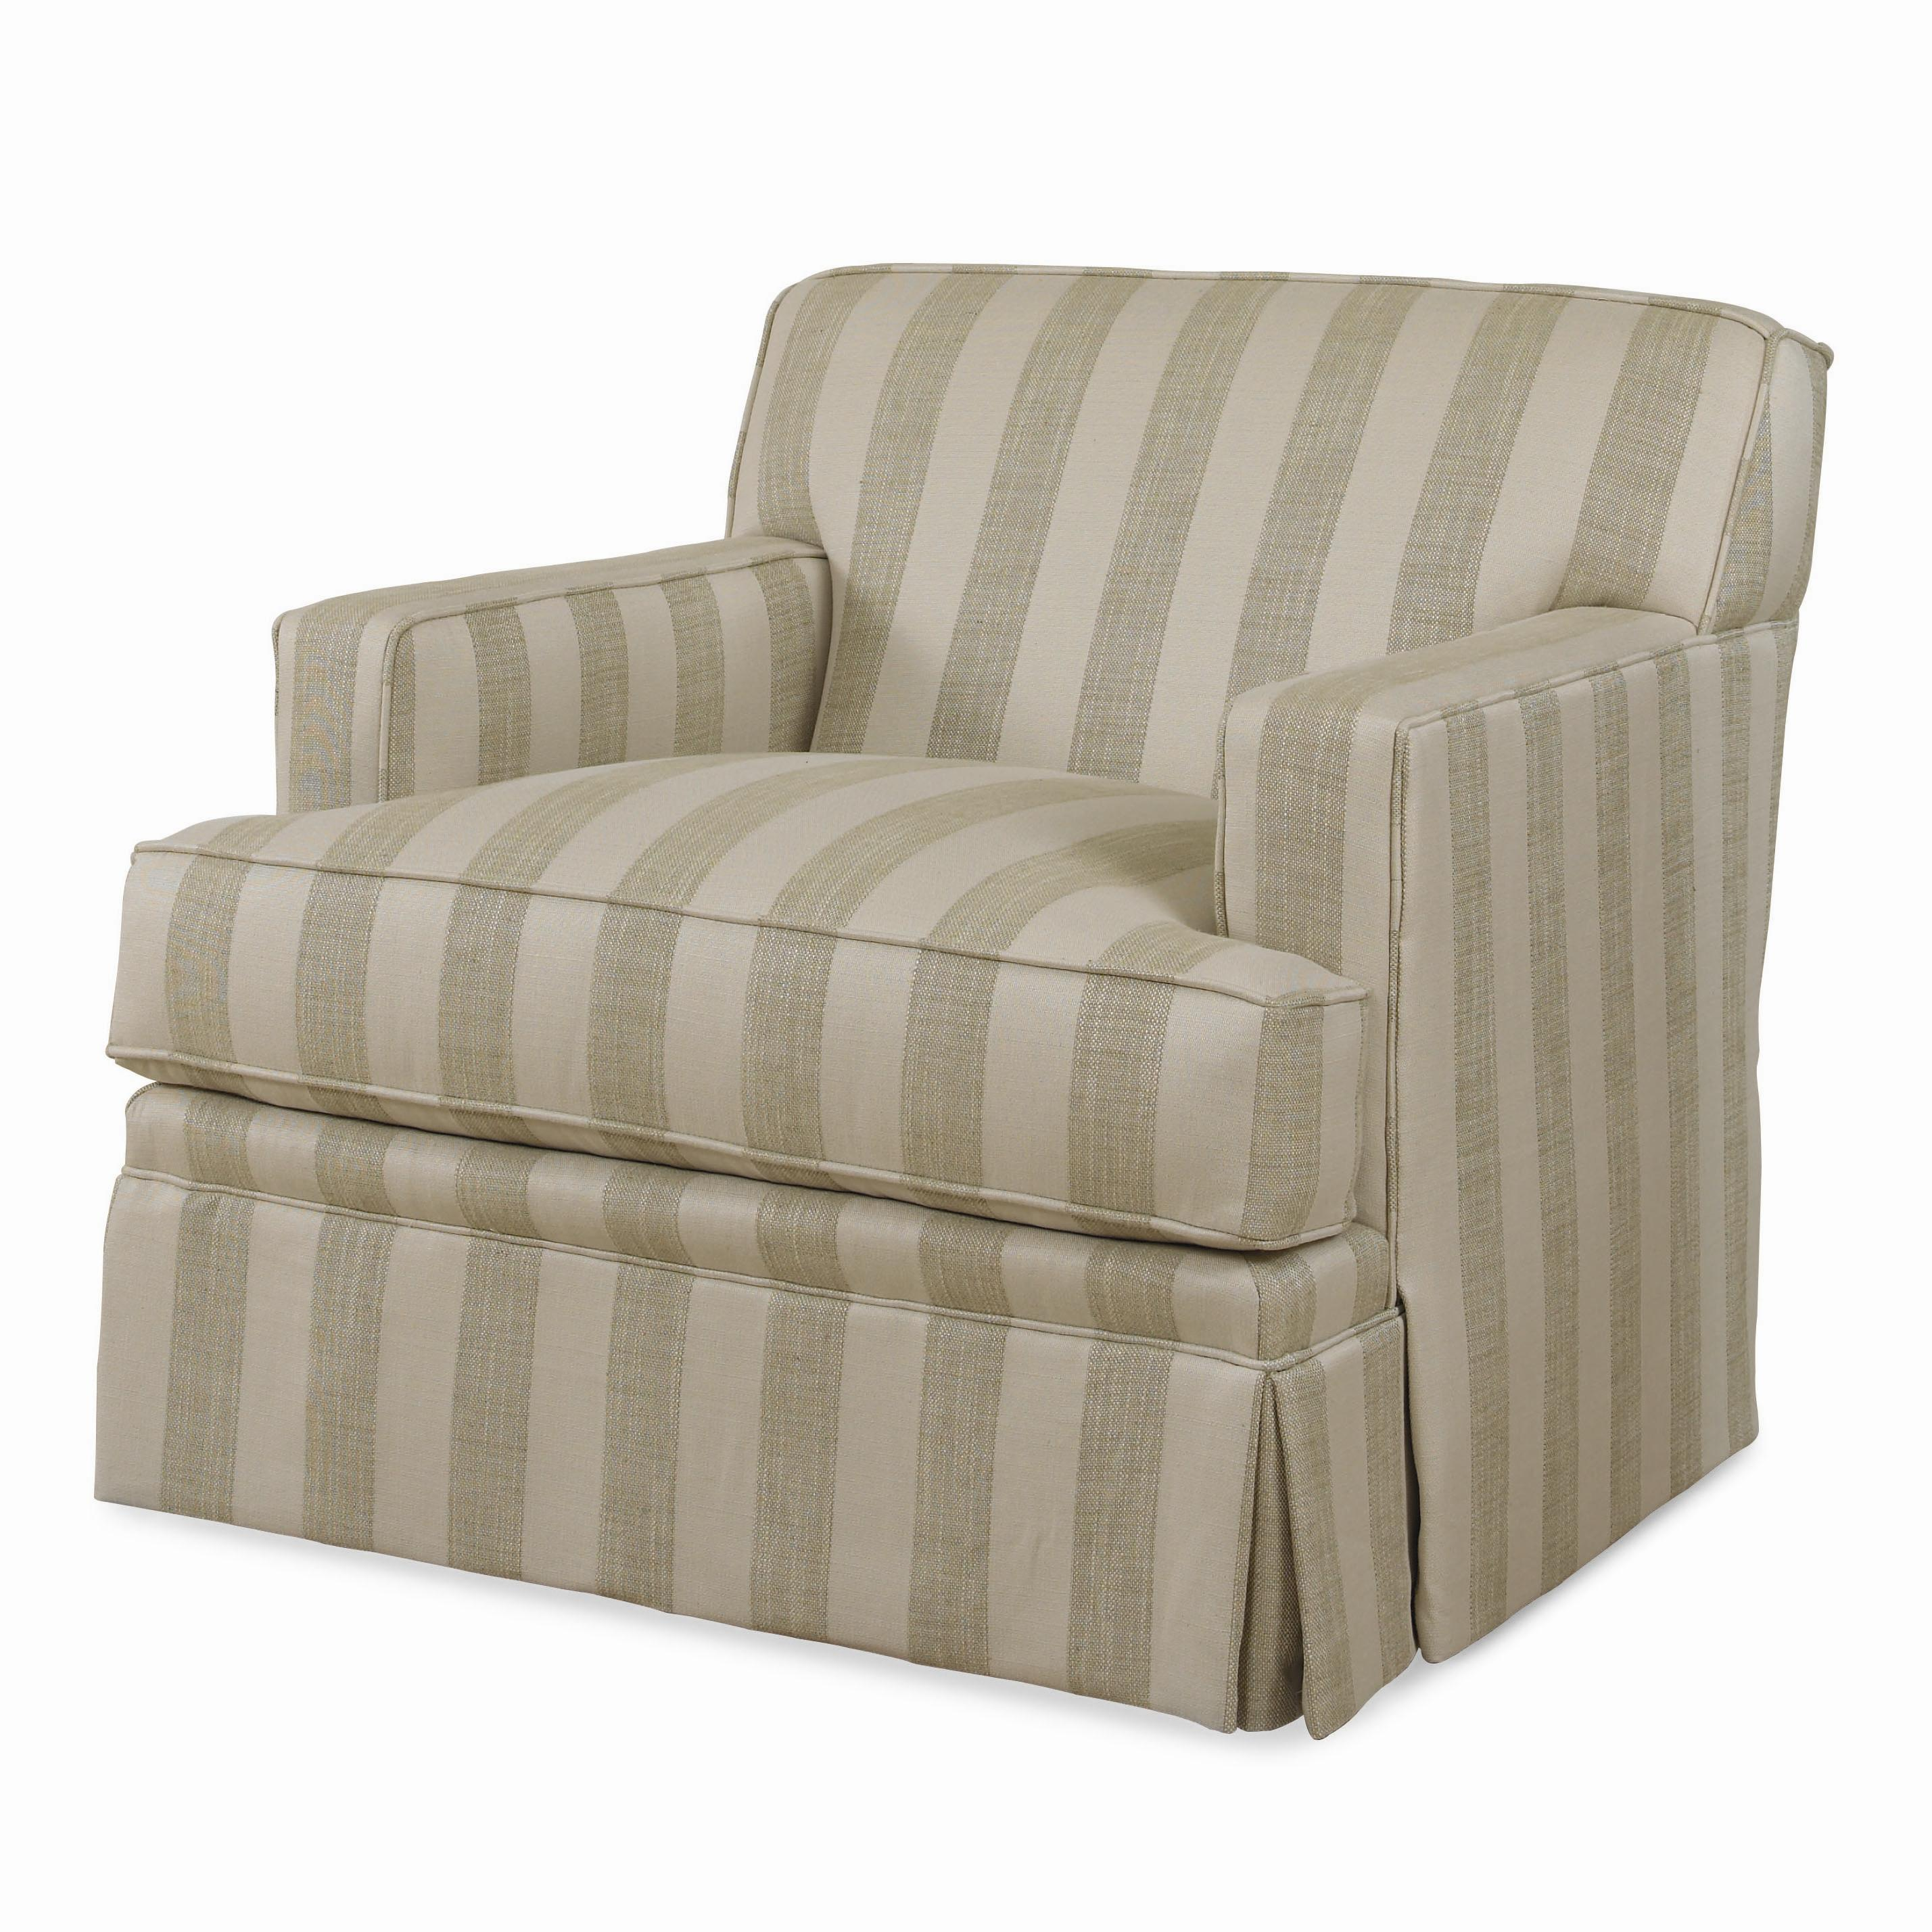 Cornerstone  <b>Customizable</b> Upholstered Chair by Century at Baer's Furniture